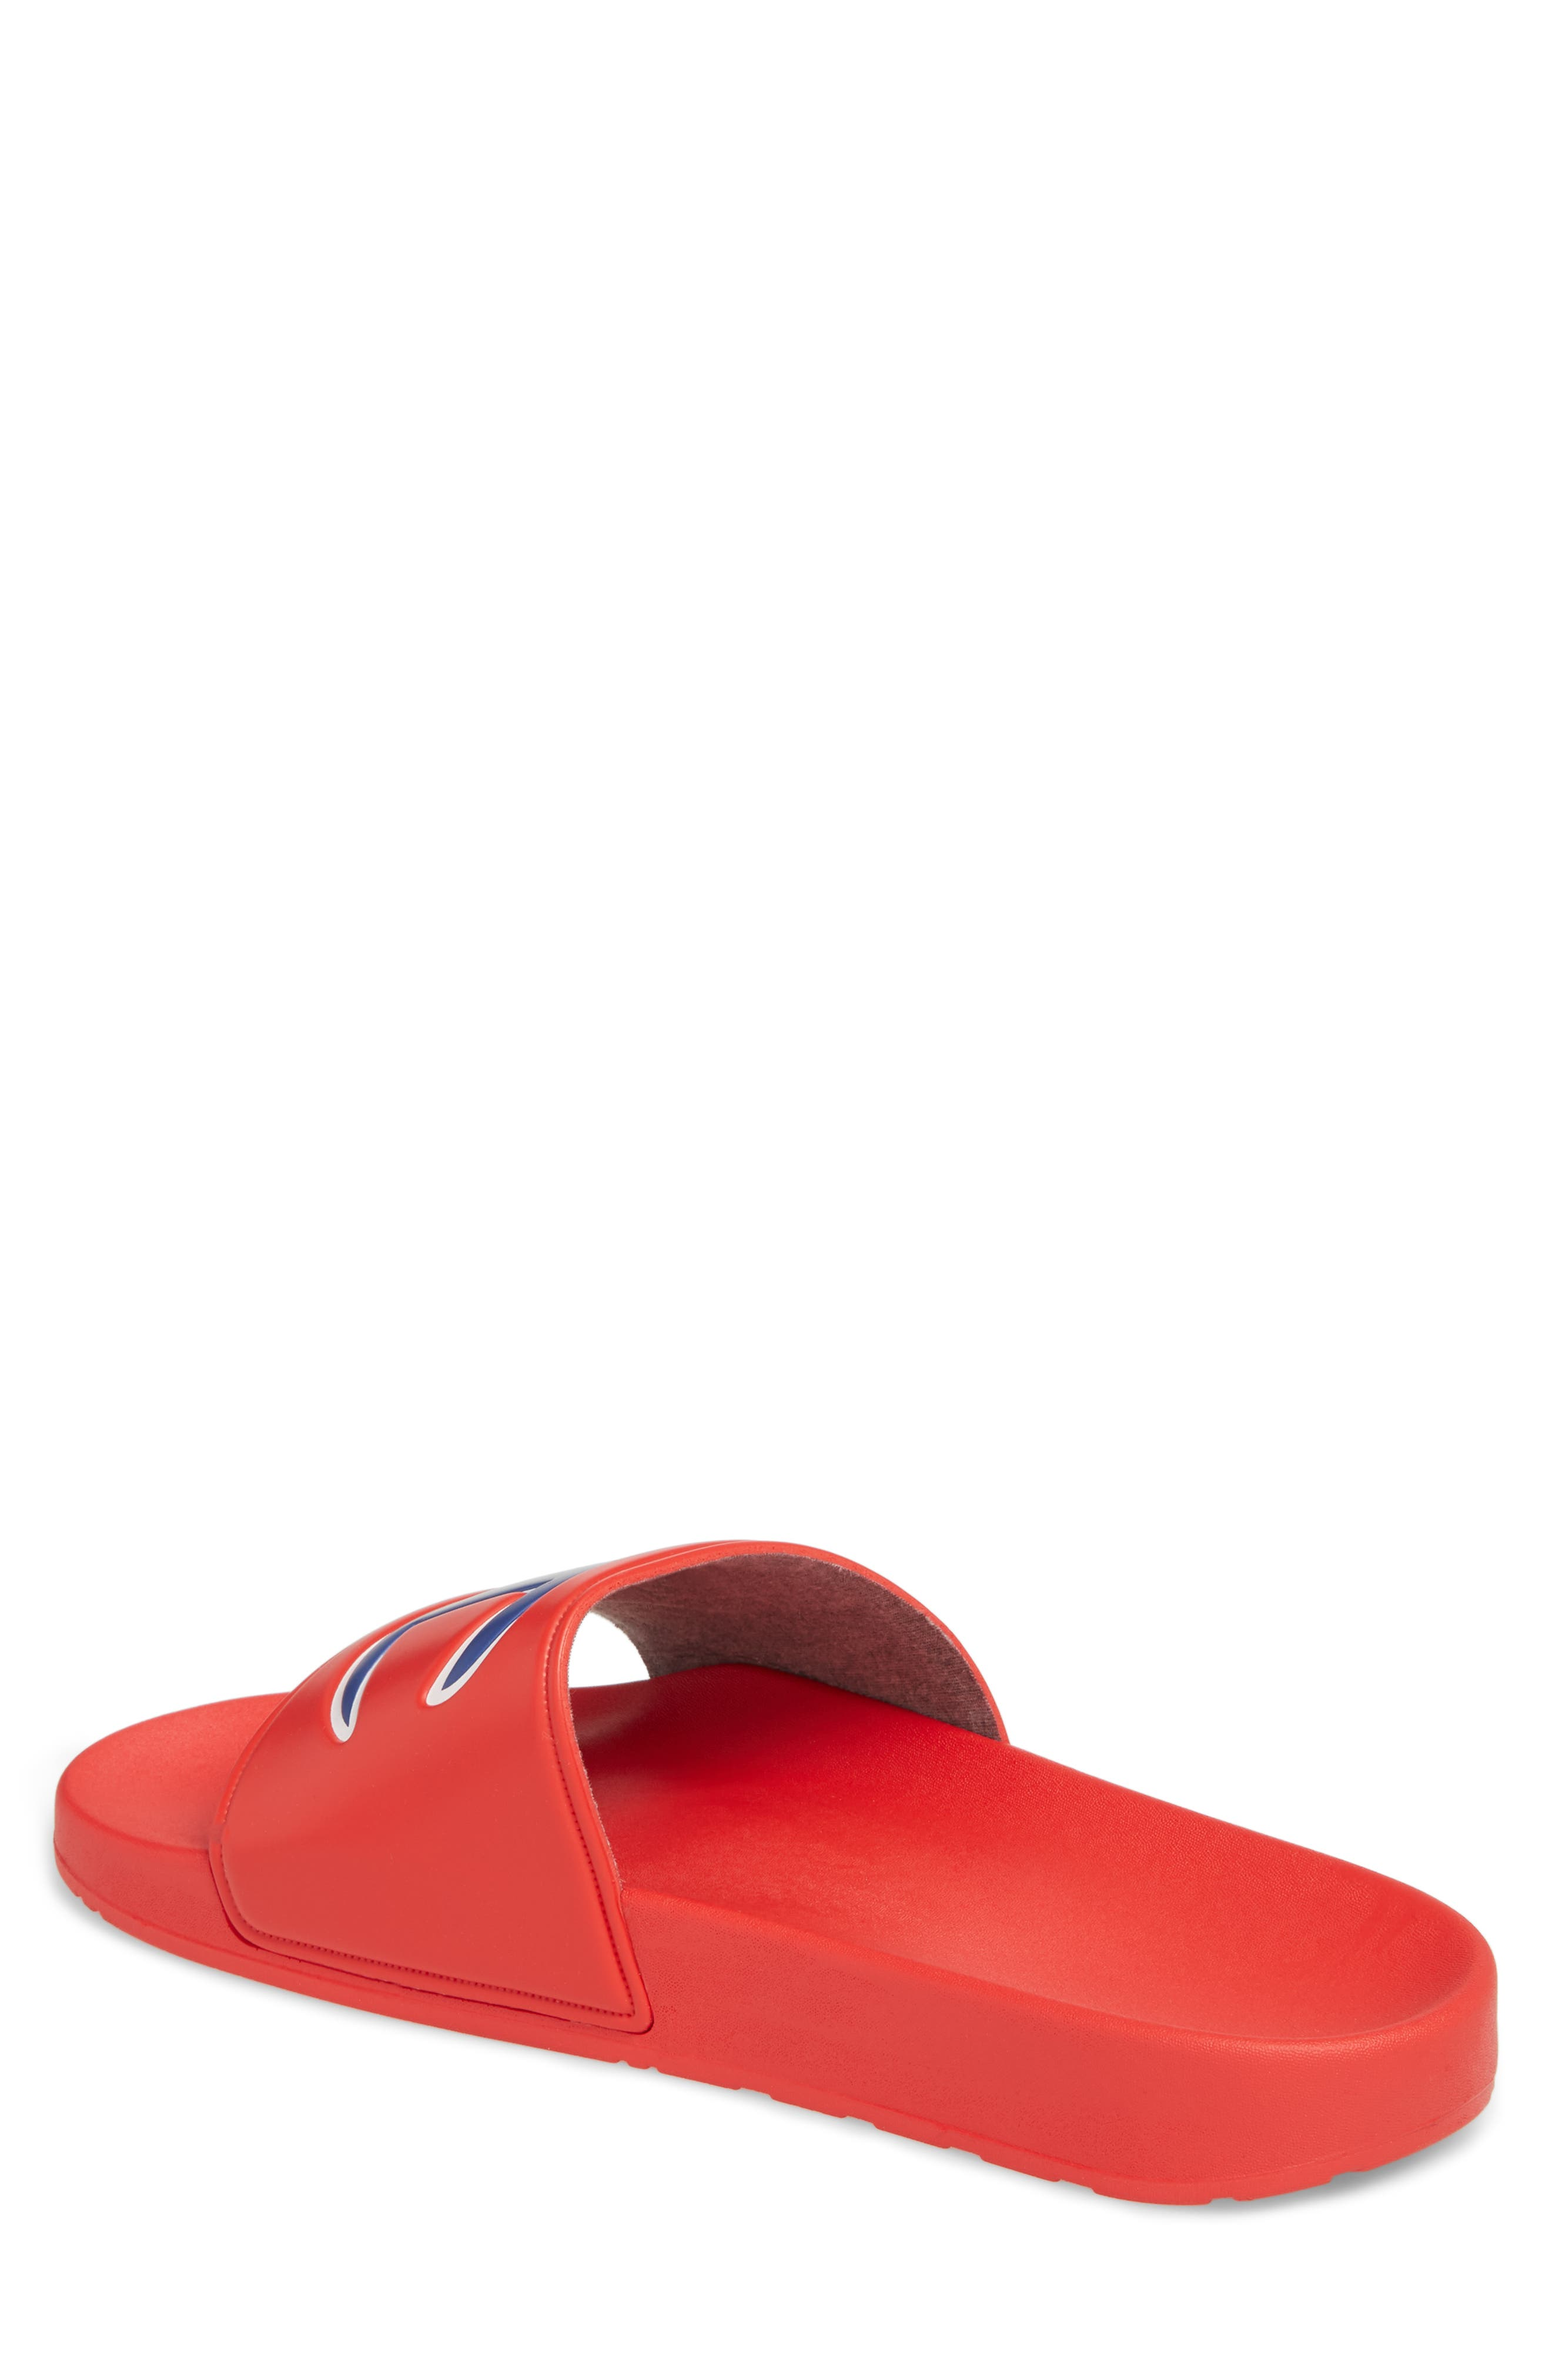 IPO Sports Slide,                             Alternate thumbnail 2, color,                             RED